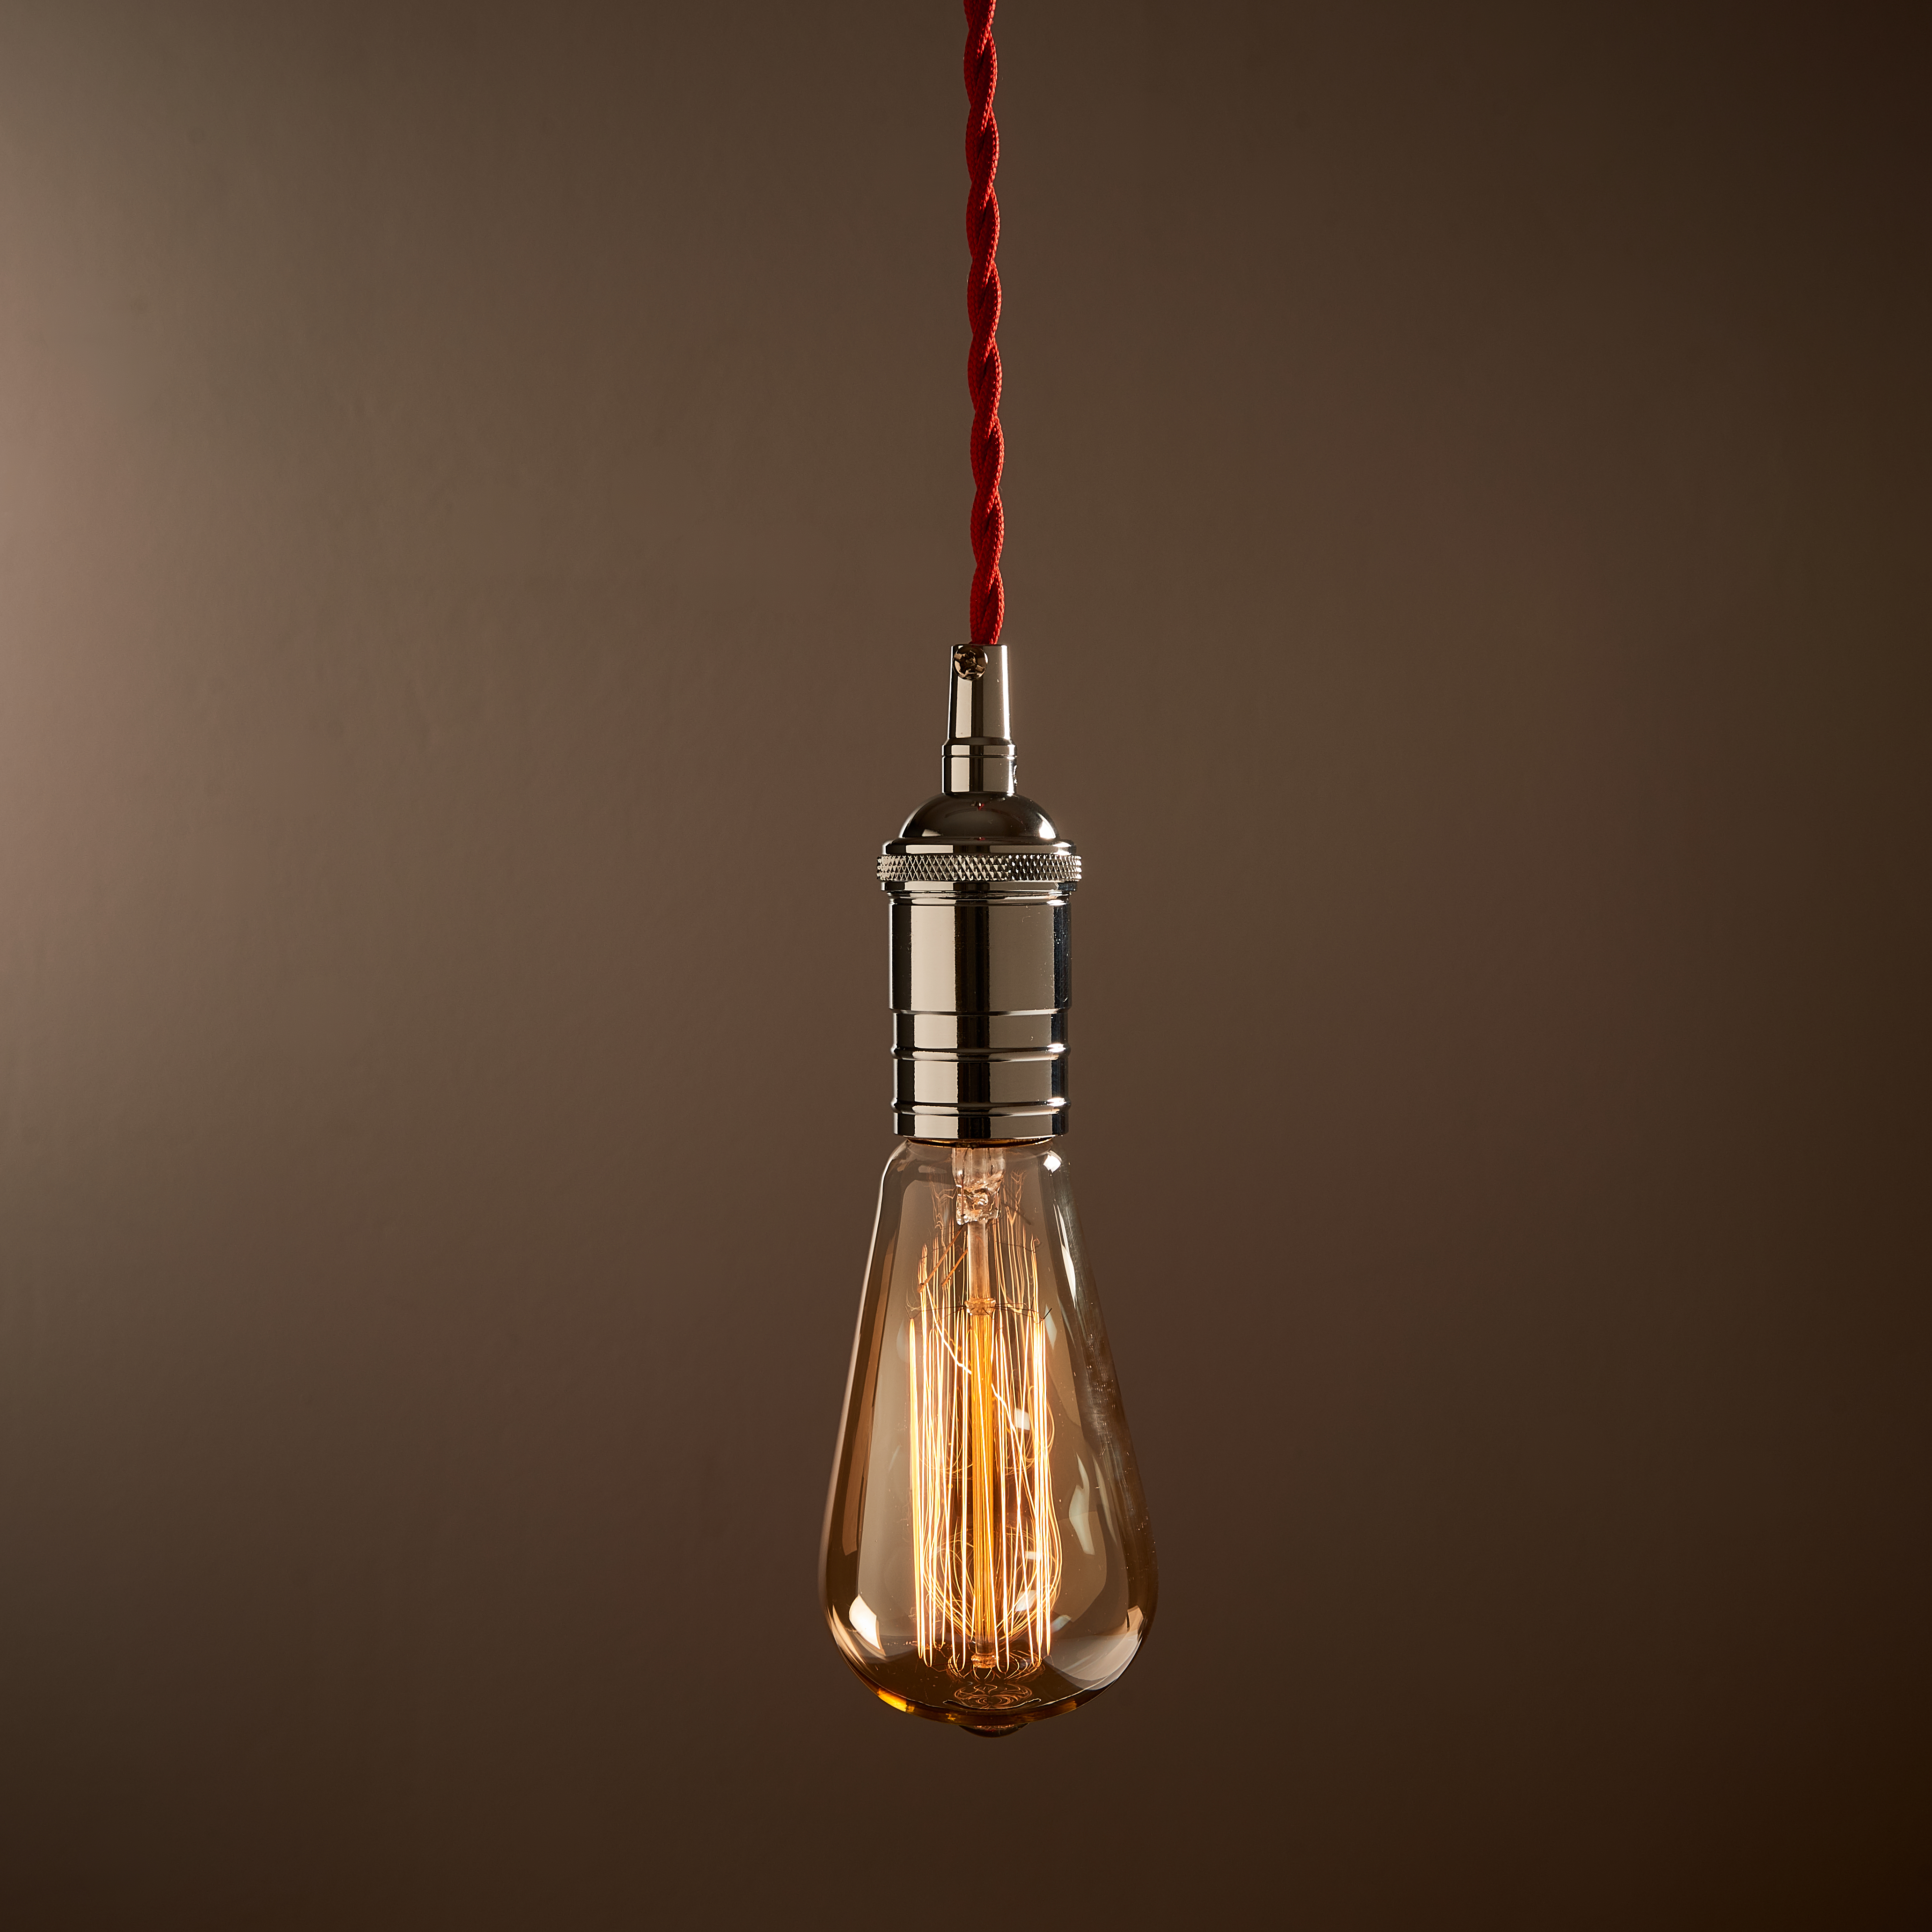 Vintage Lights Wohnaccessoires Queence